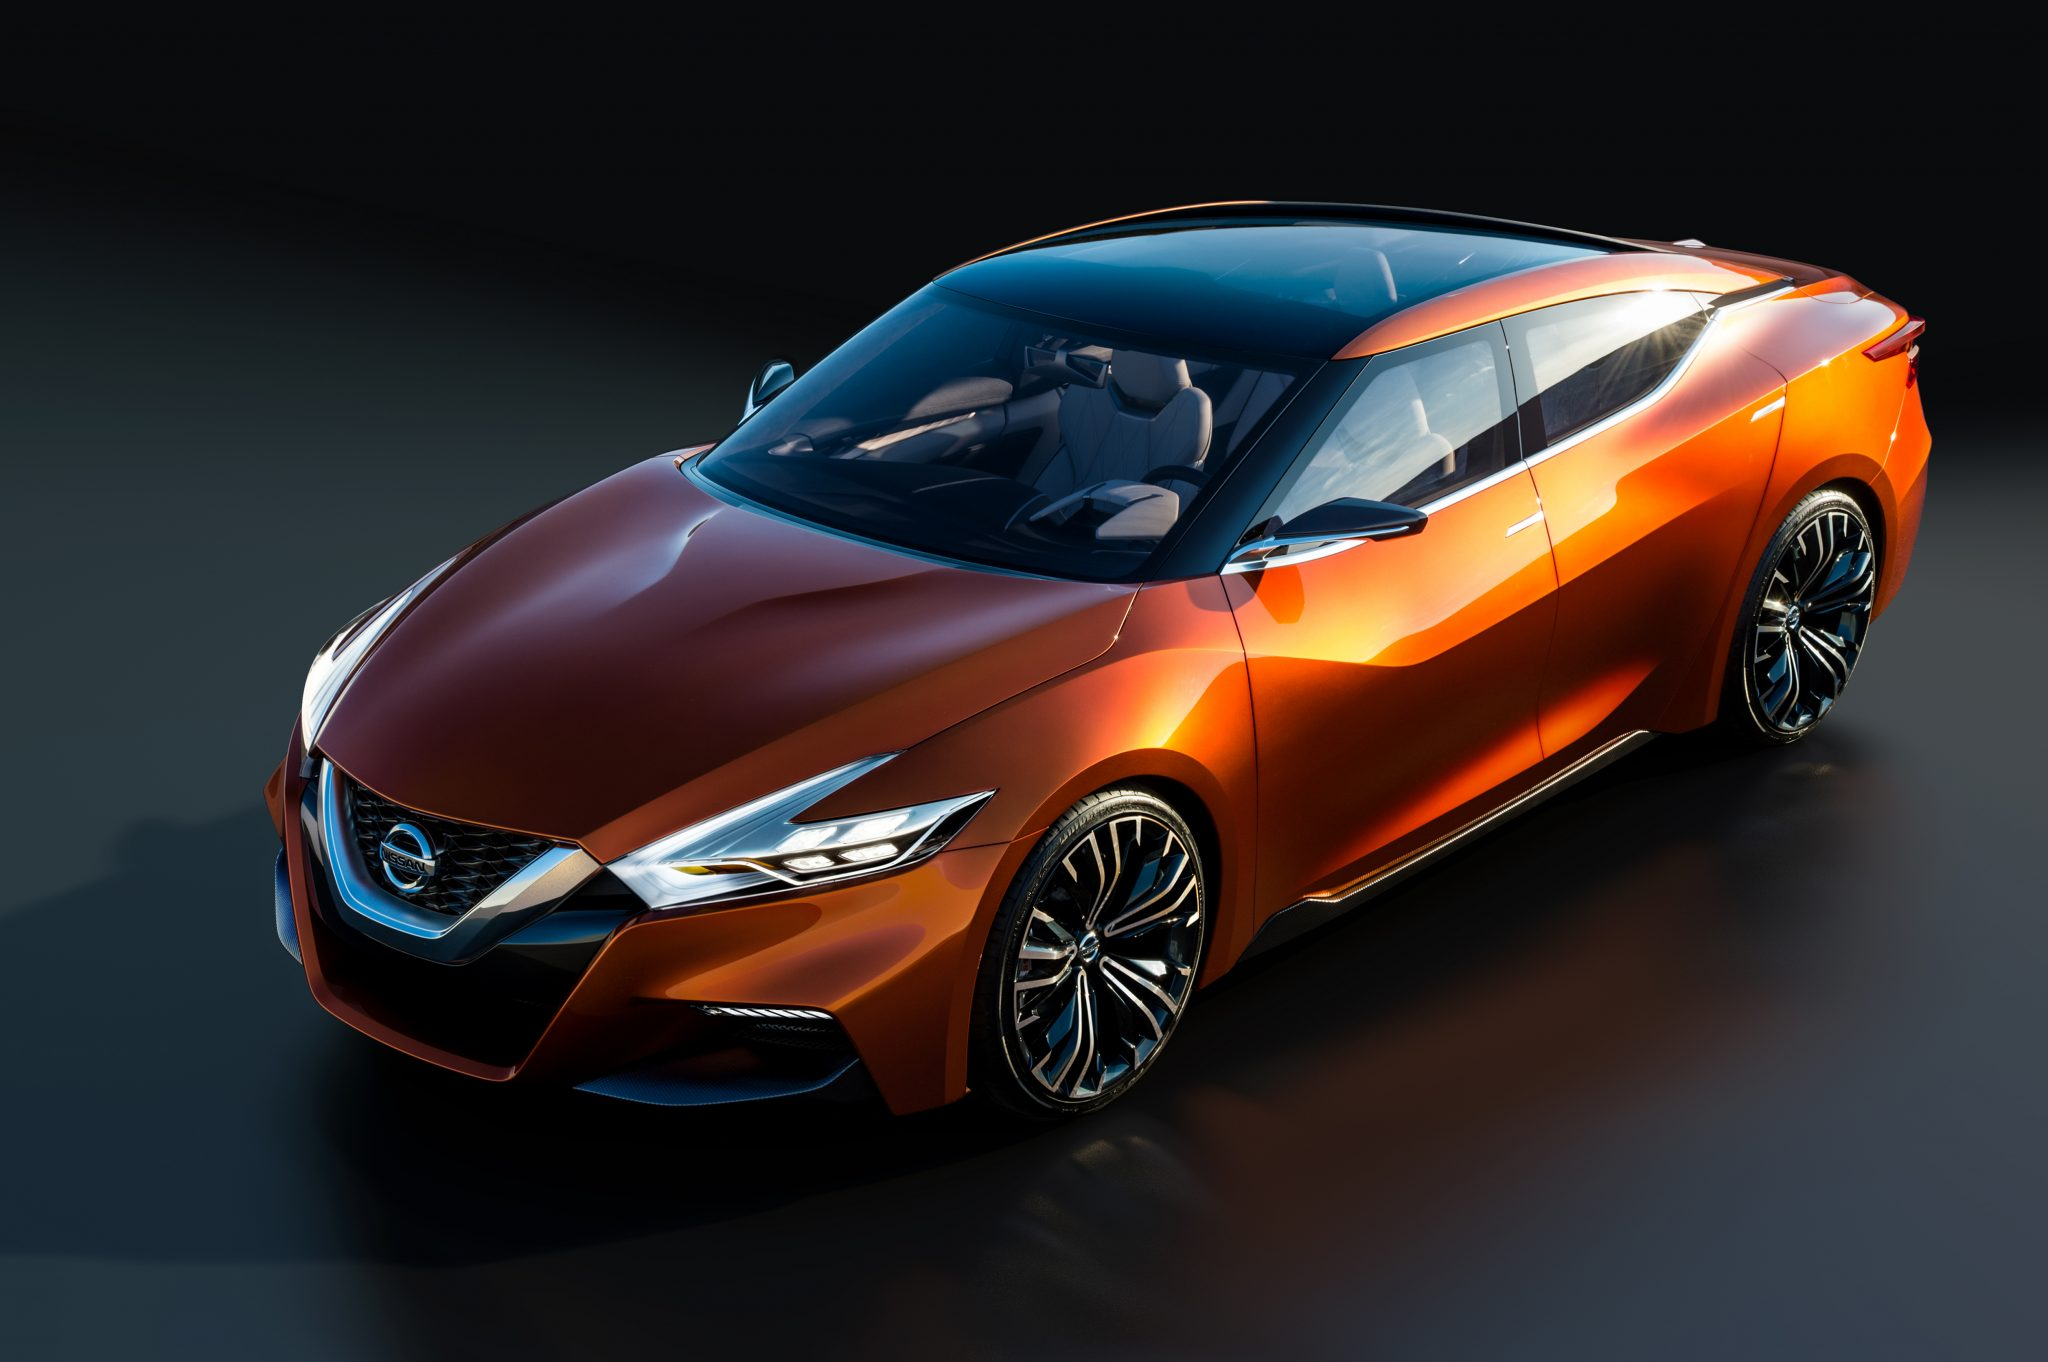 nissan sport sedan concept the four door sports car the world wants the news wheel. Black Bedroom Furniture Sets. Home Design Ideas